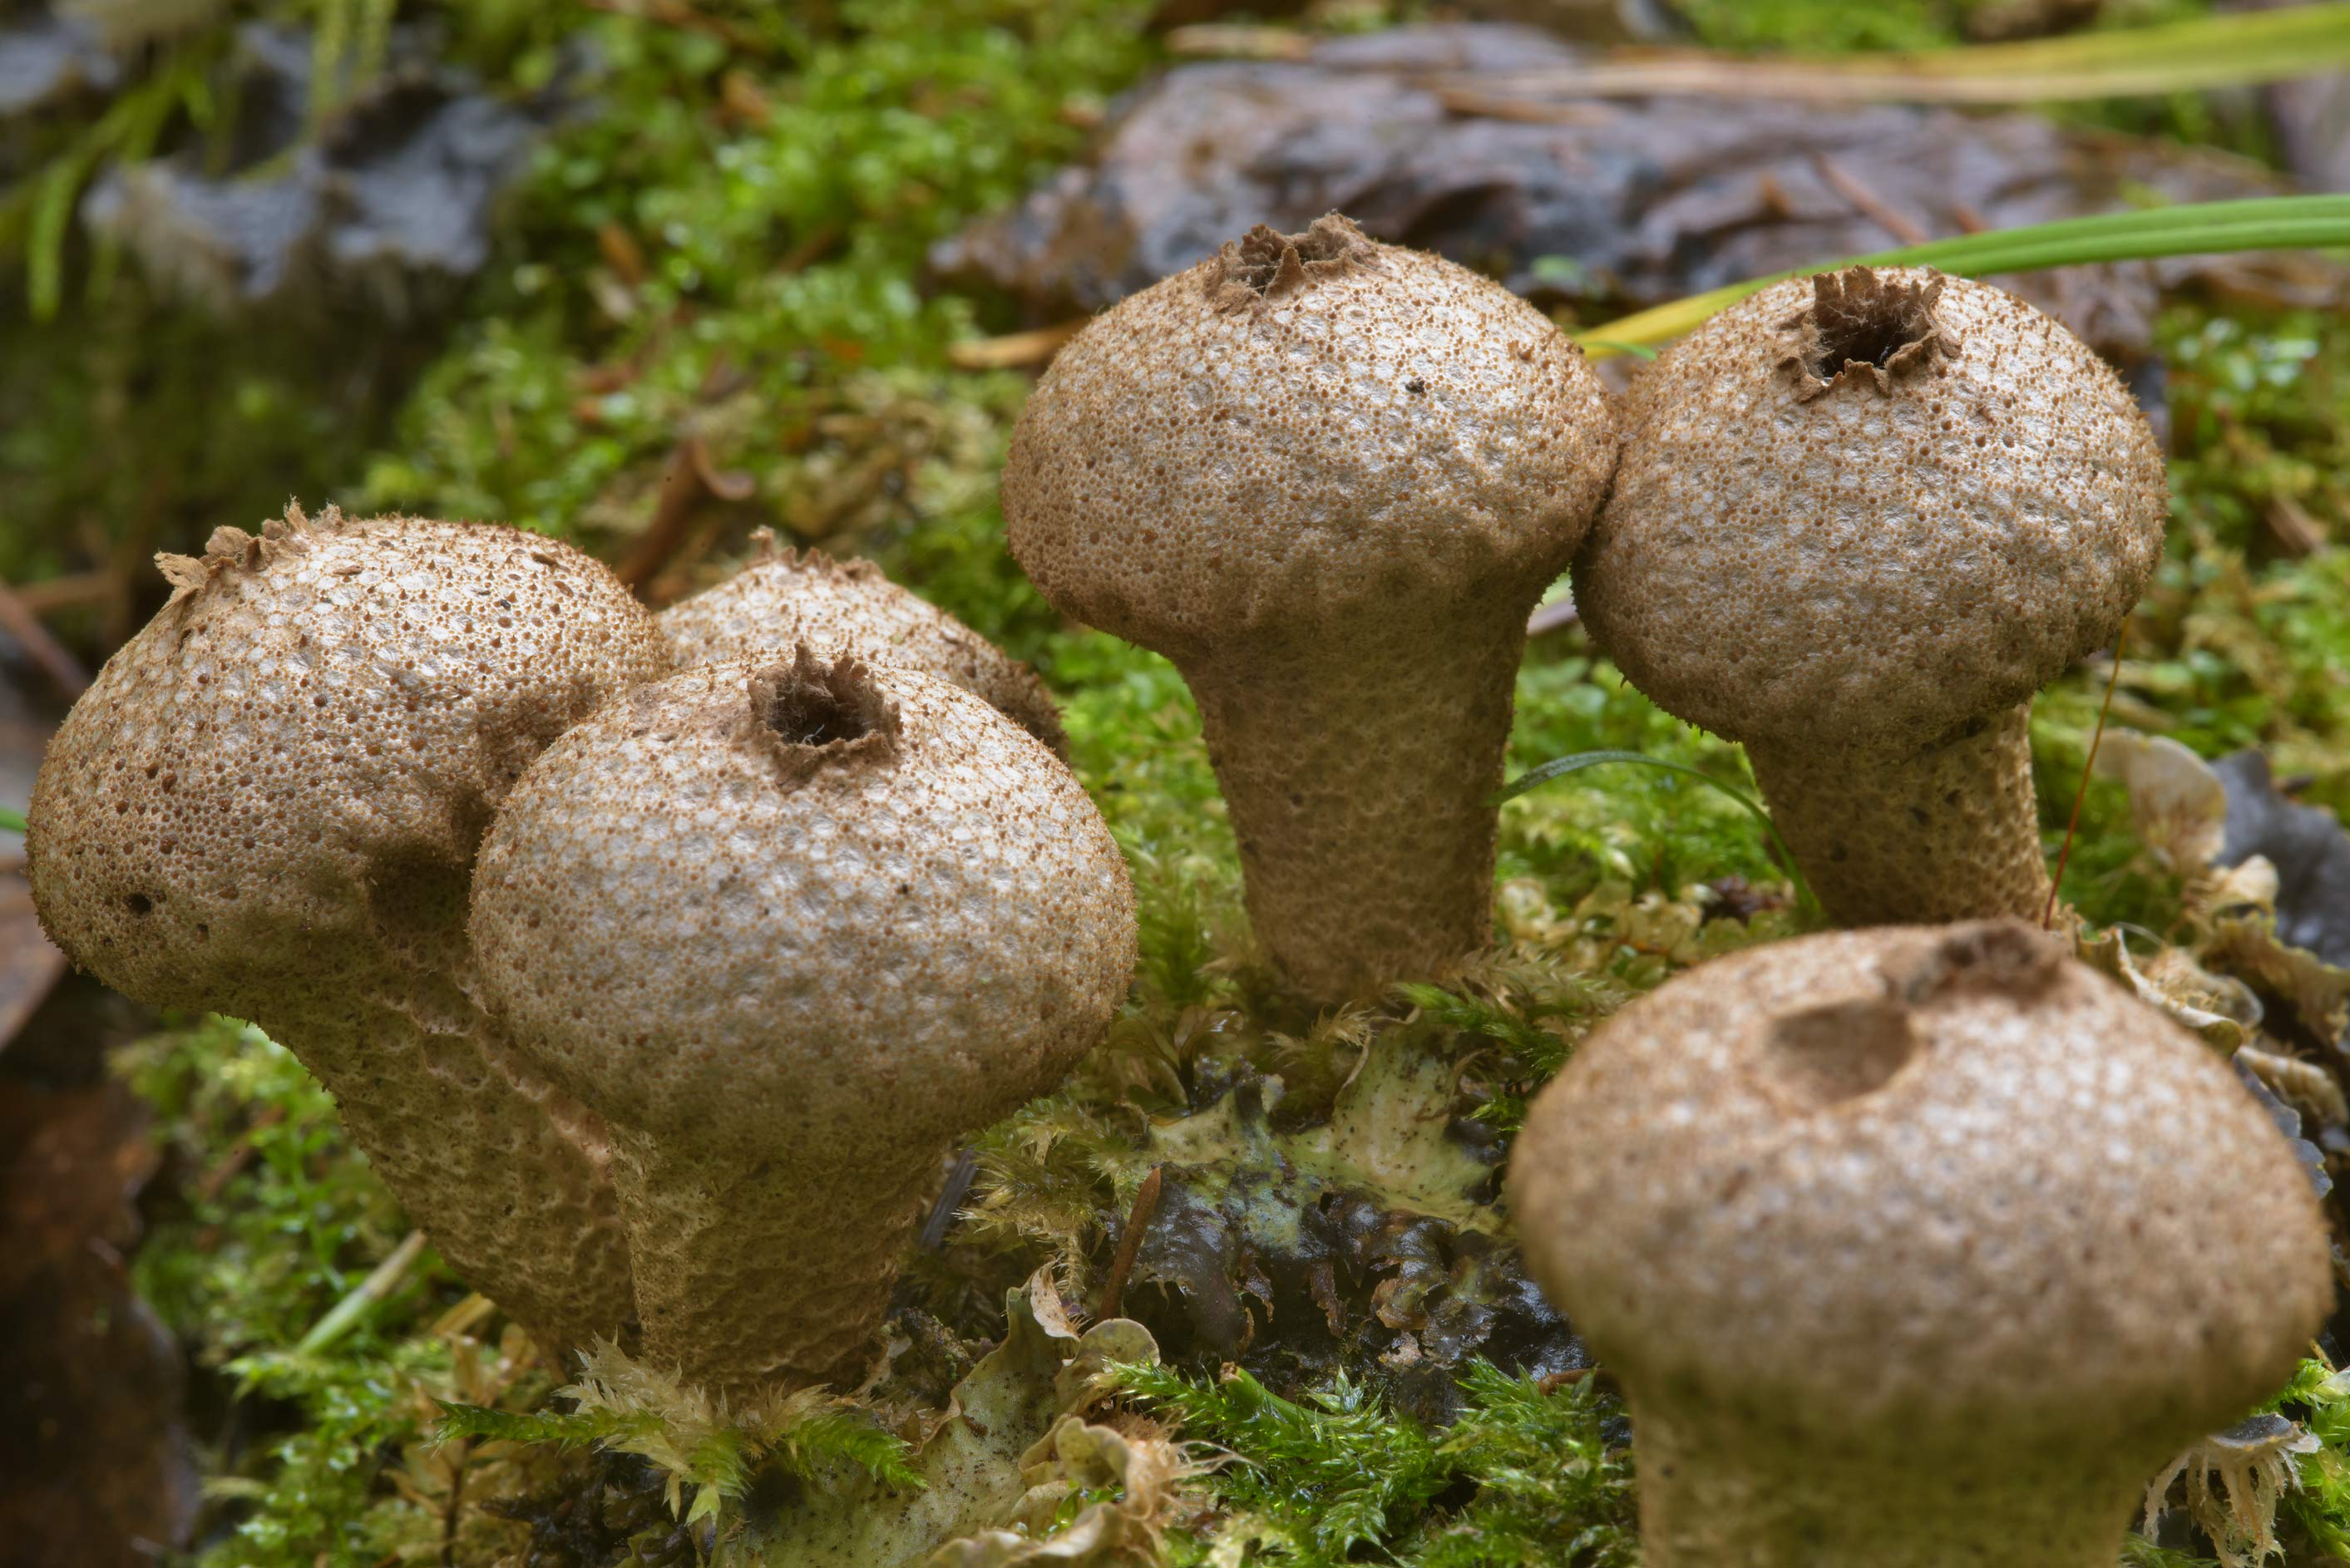 Pear-shaped puffball mushrooms (Lycoperdon...south from St.Petersburg, Russia